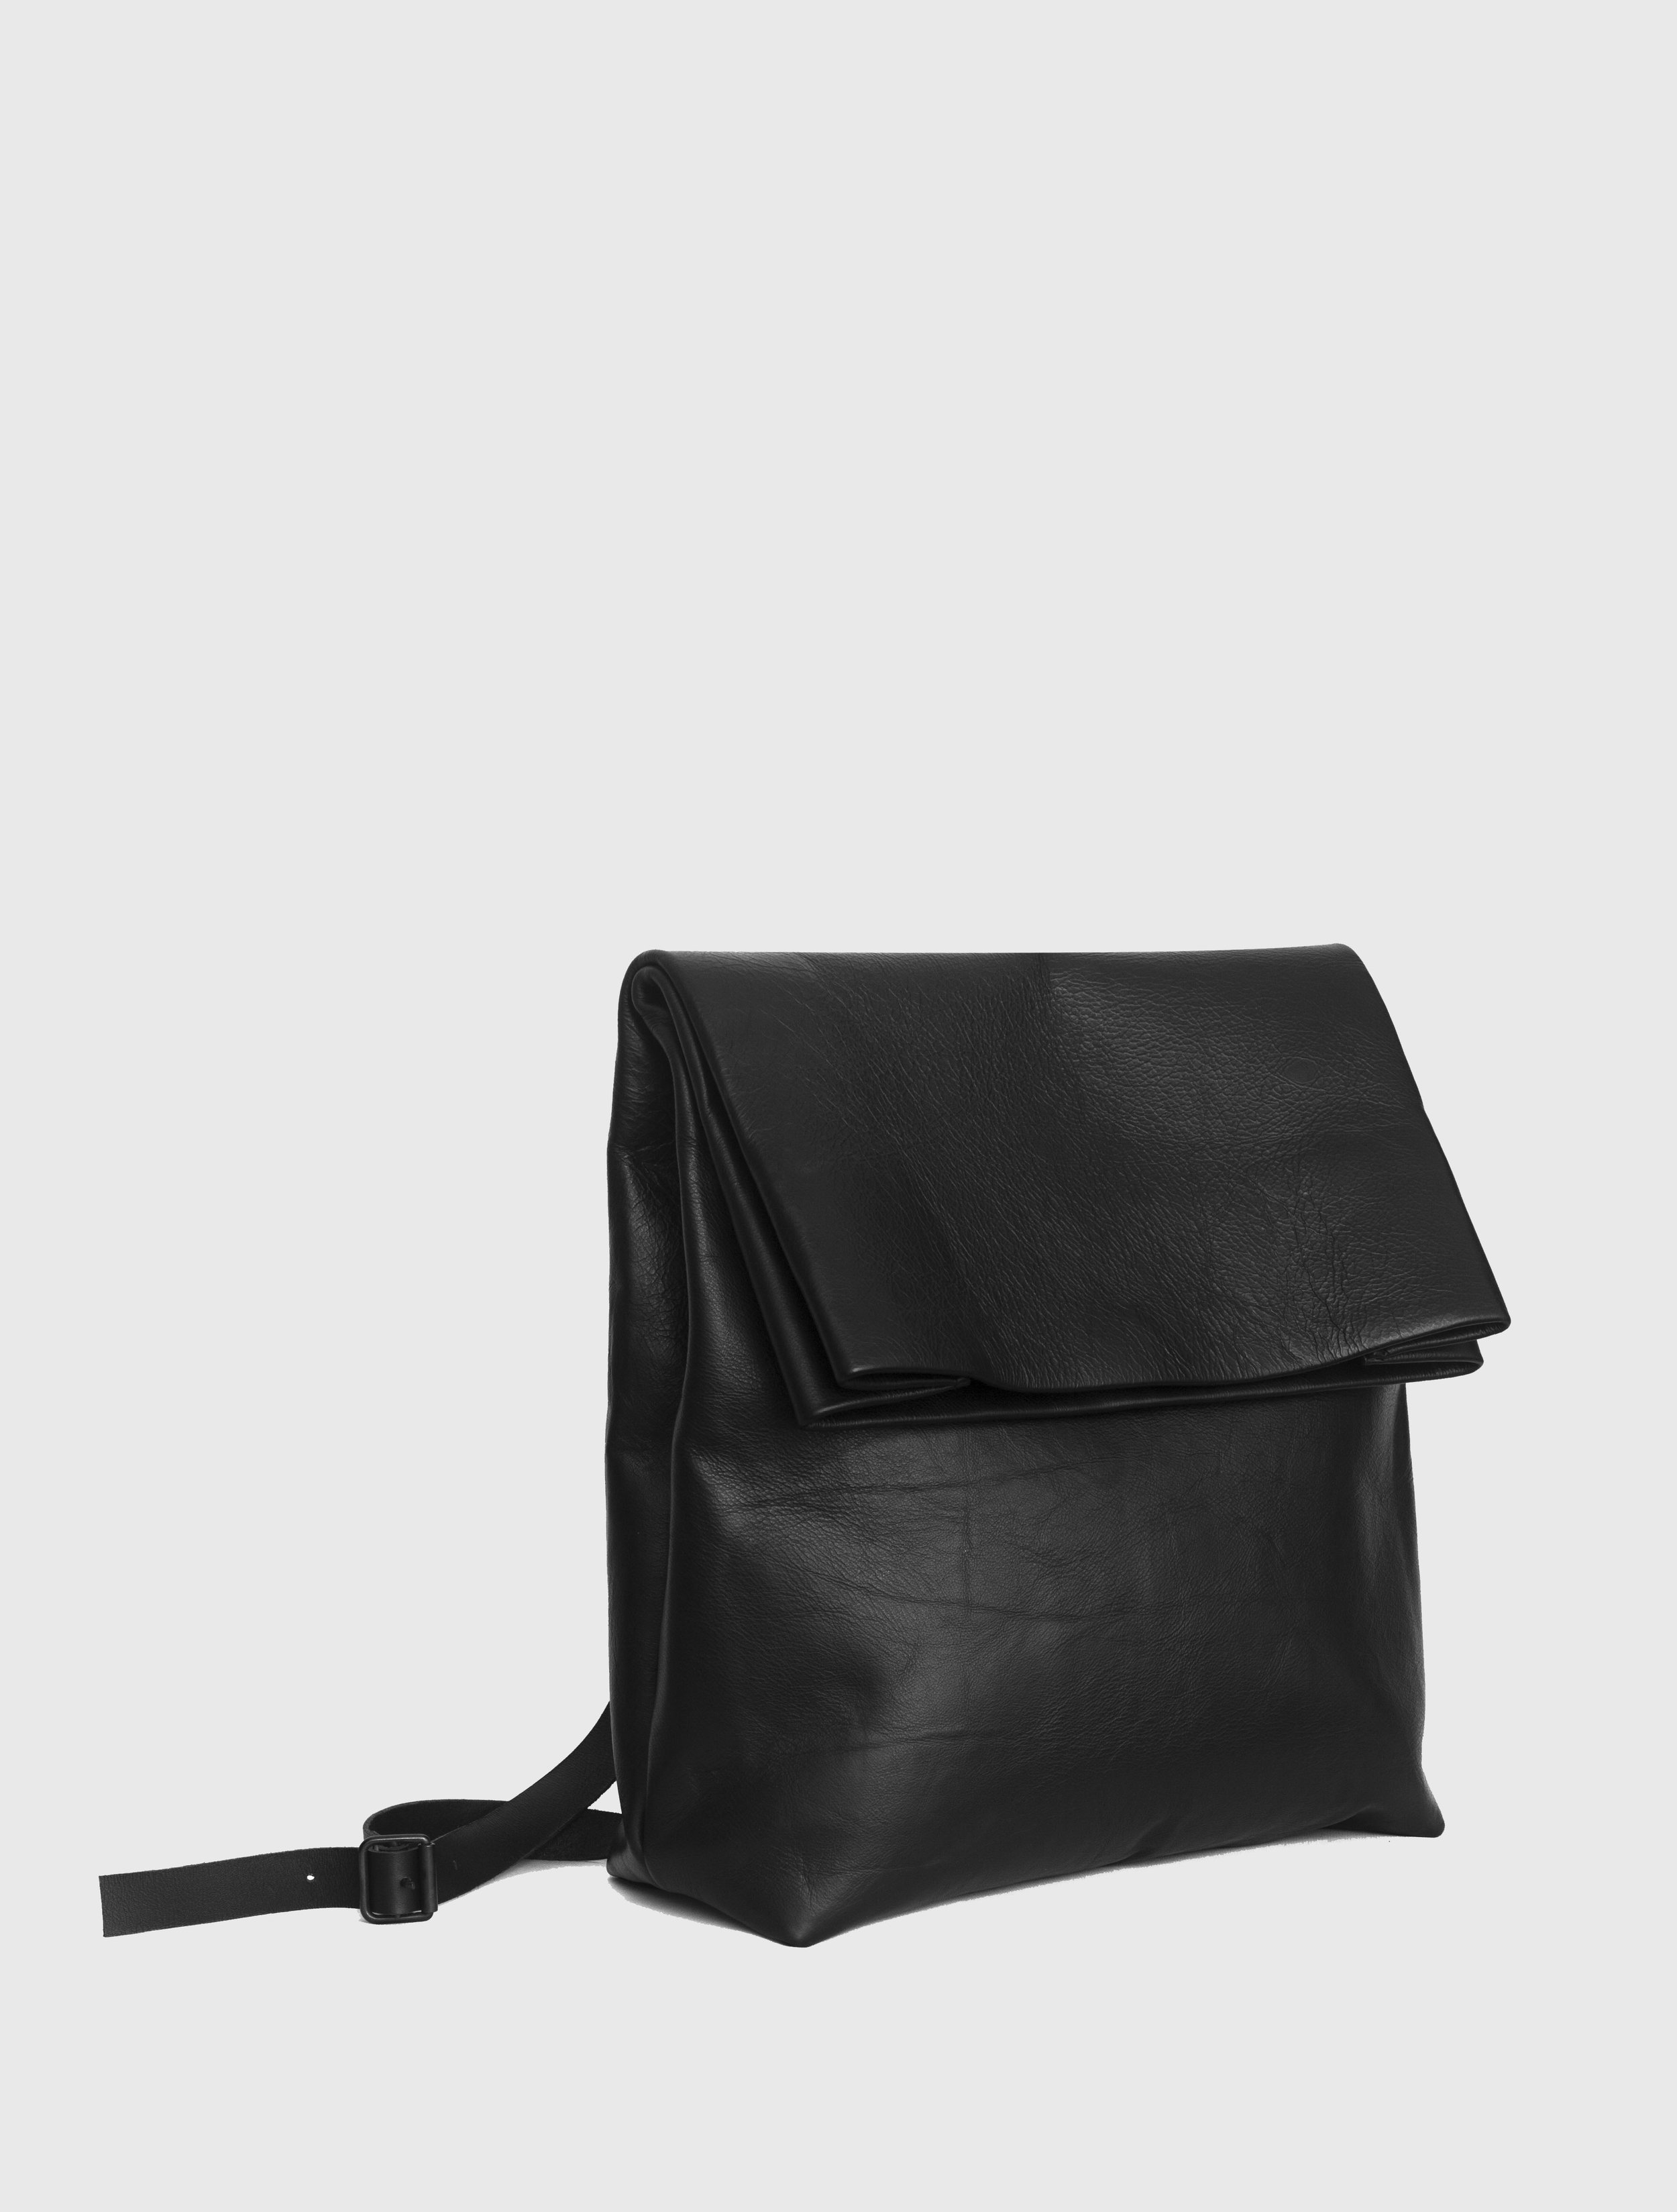 LEATHER X NEOPRENE BACKPACK_0003_Layer 1.jpg